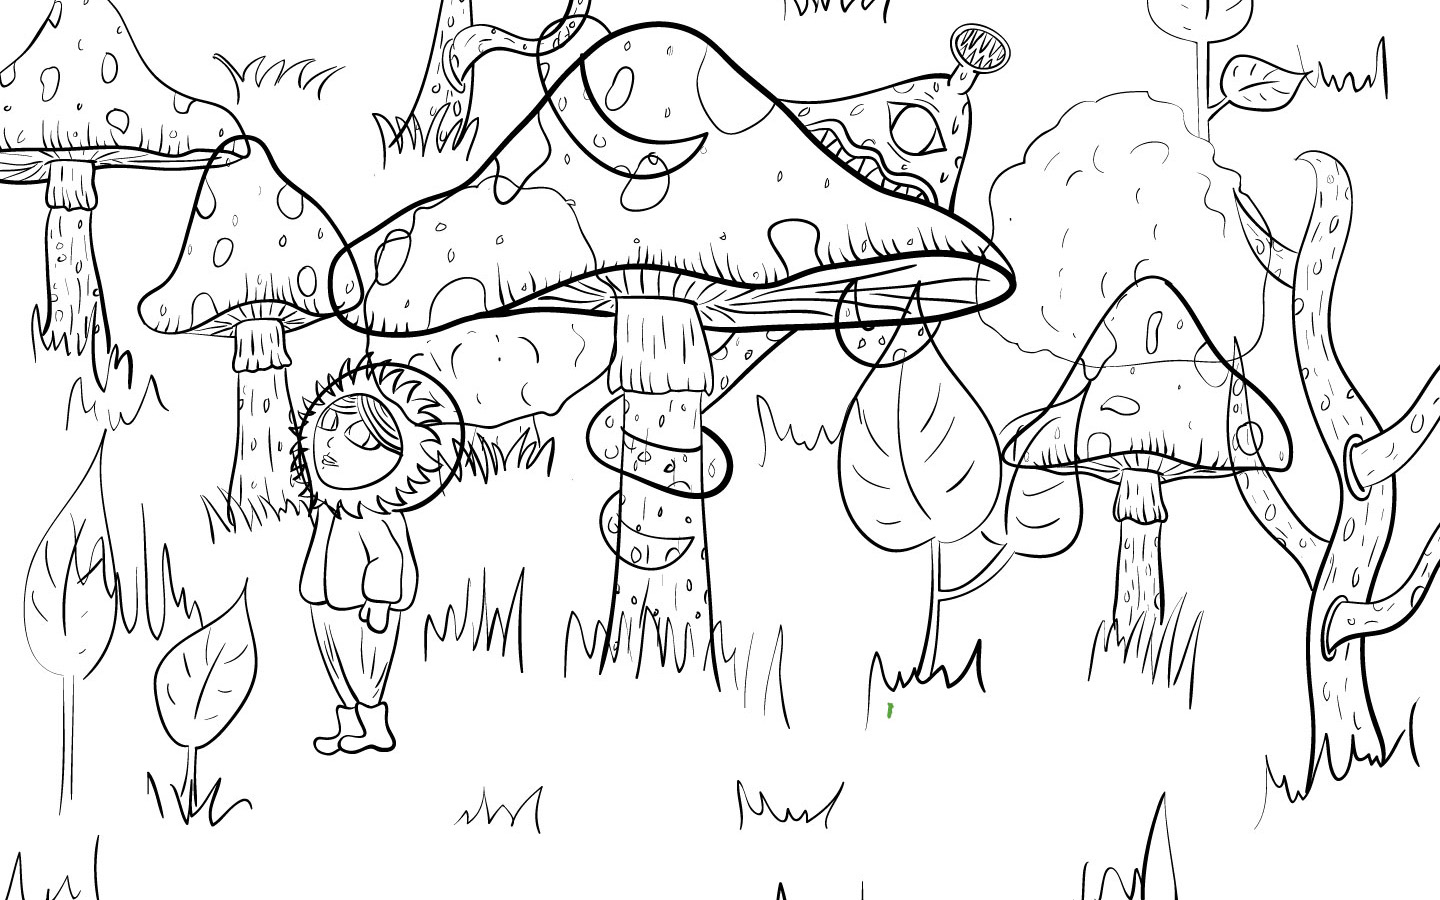 Creepy forest illustration - Outlines